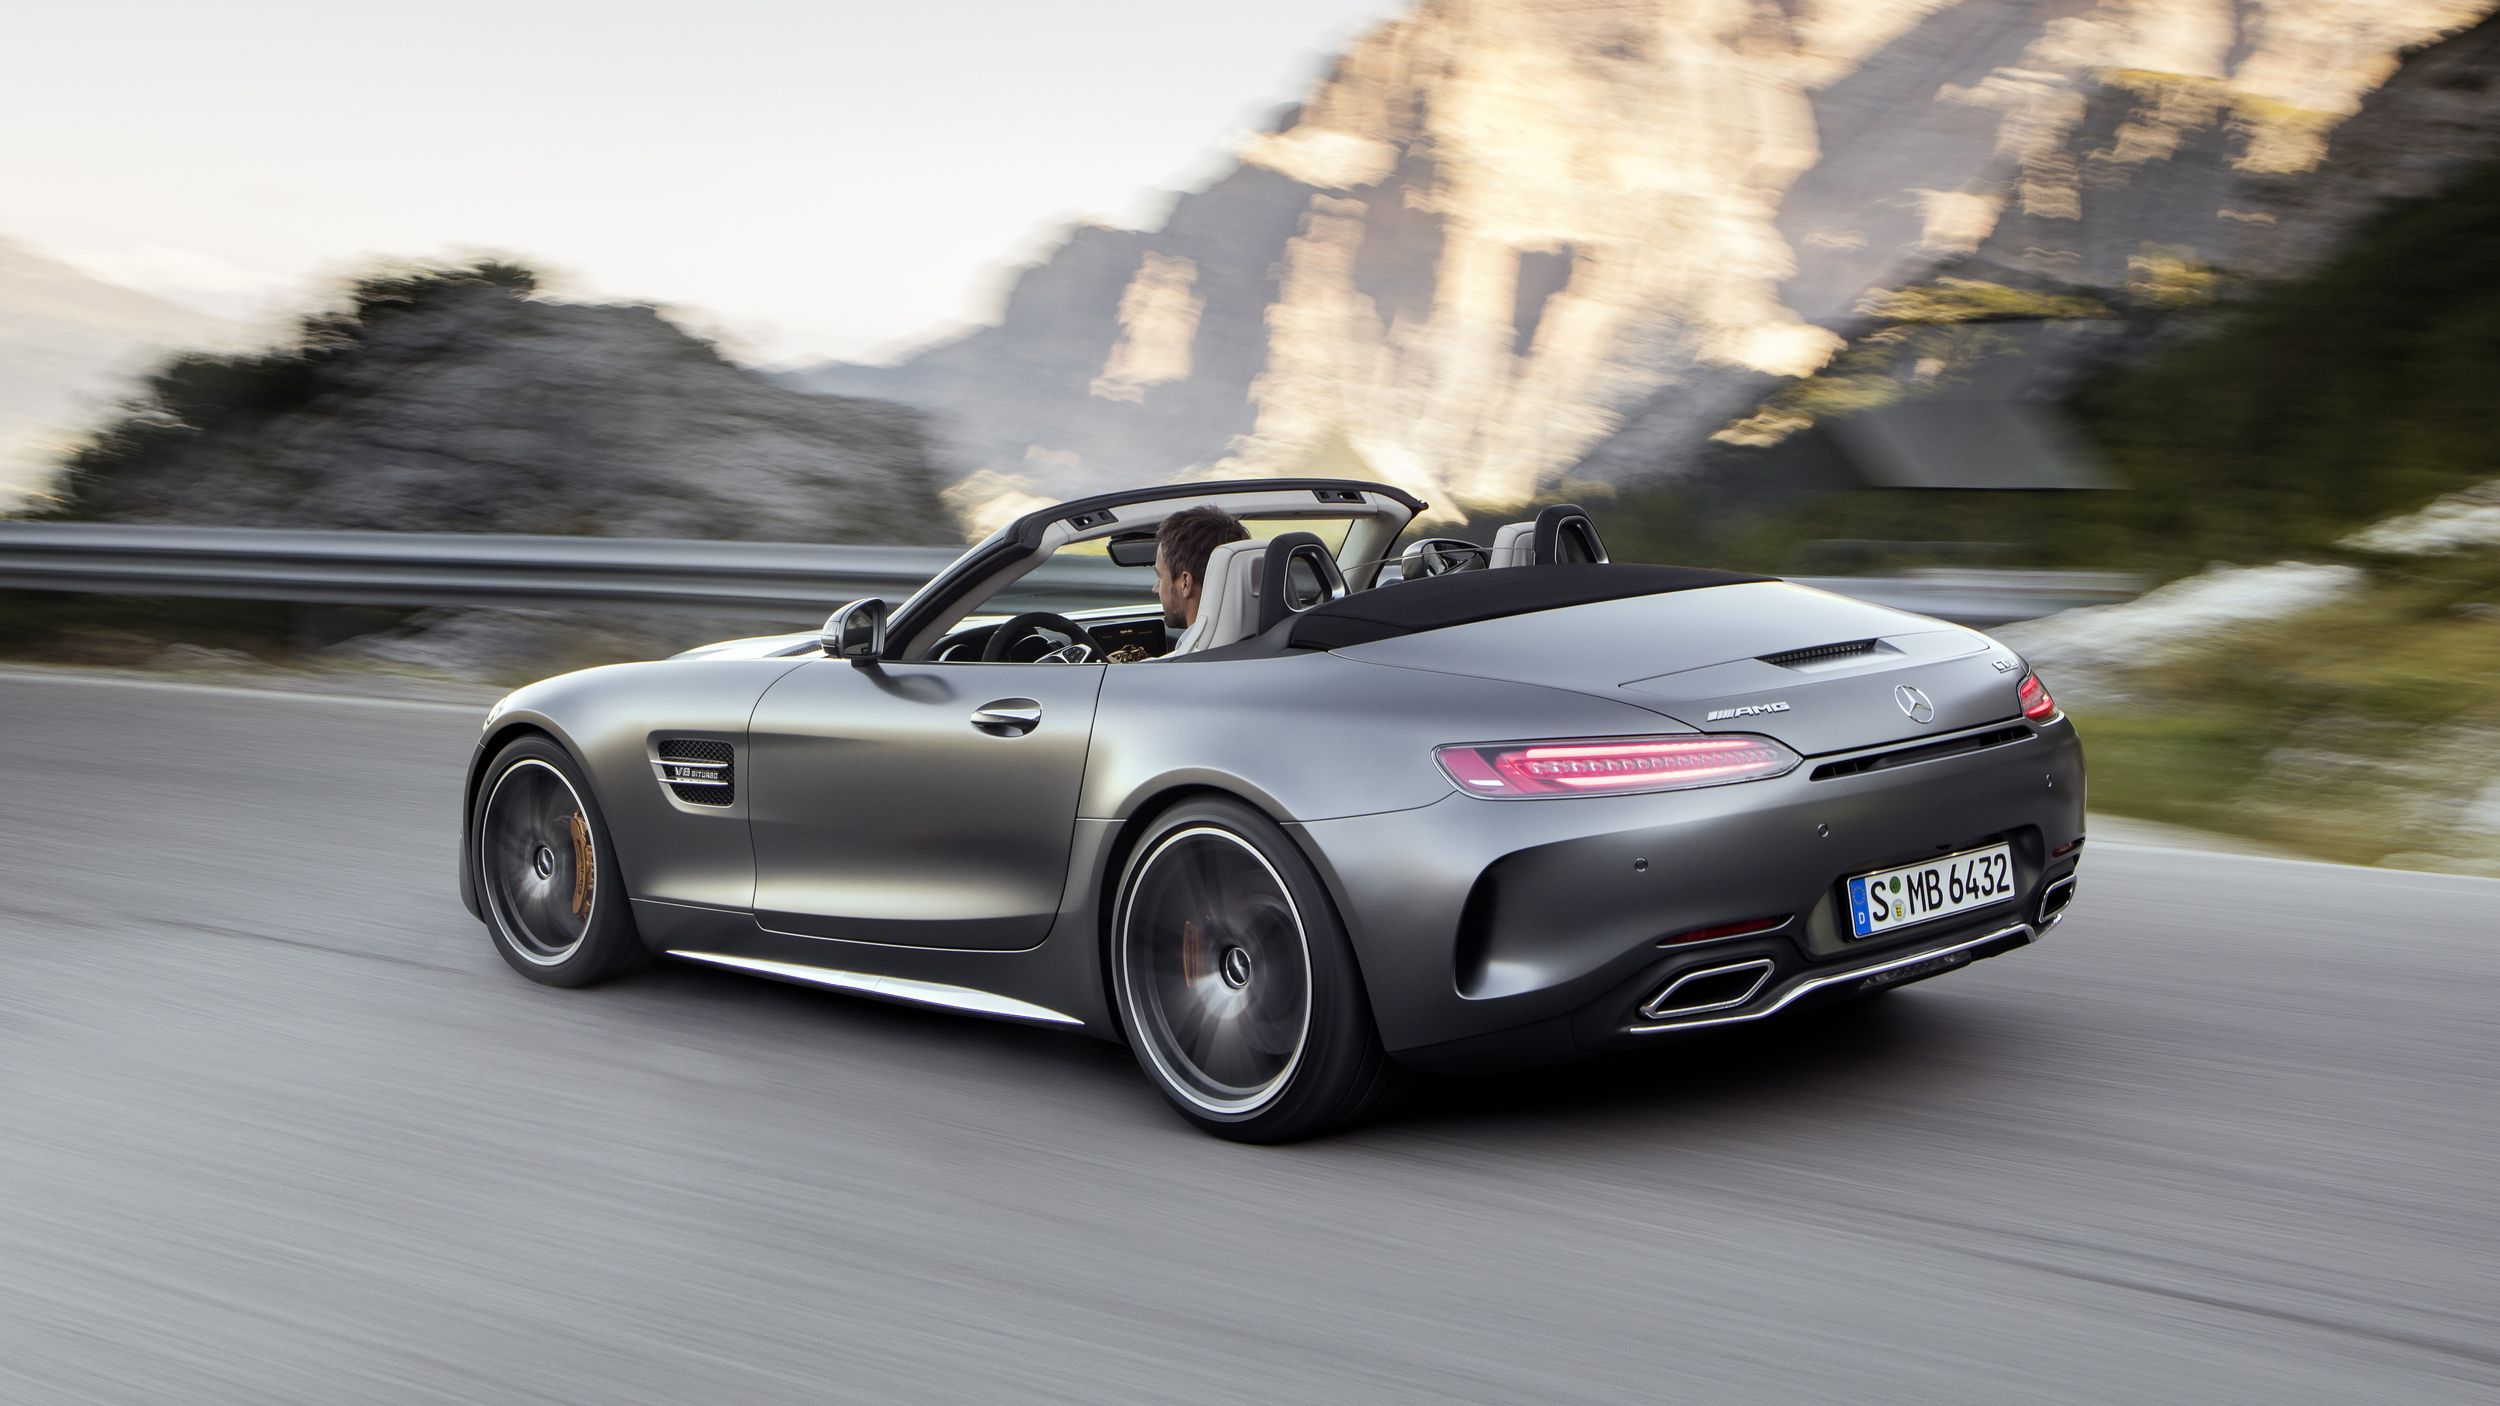 The 2018 Mercedes AMG GT roadster should start at around $120 000